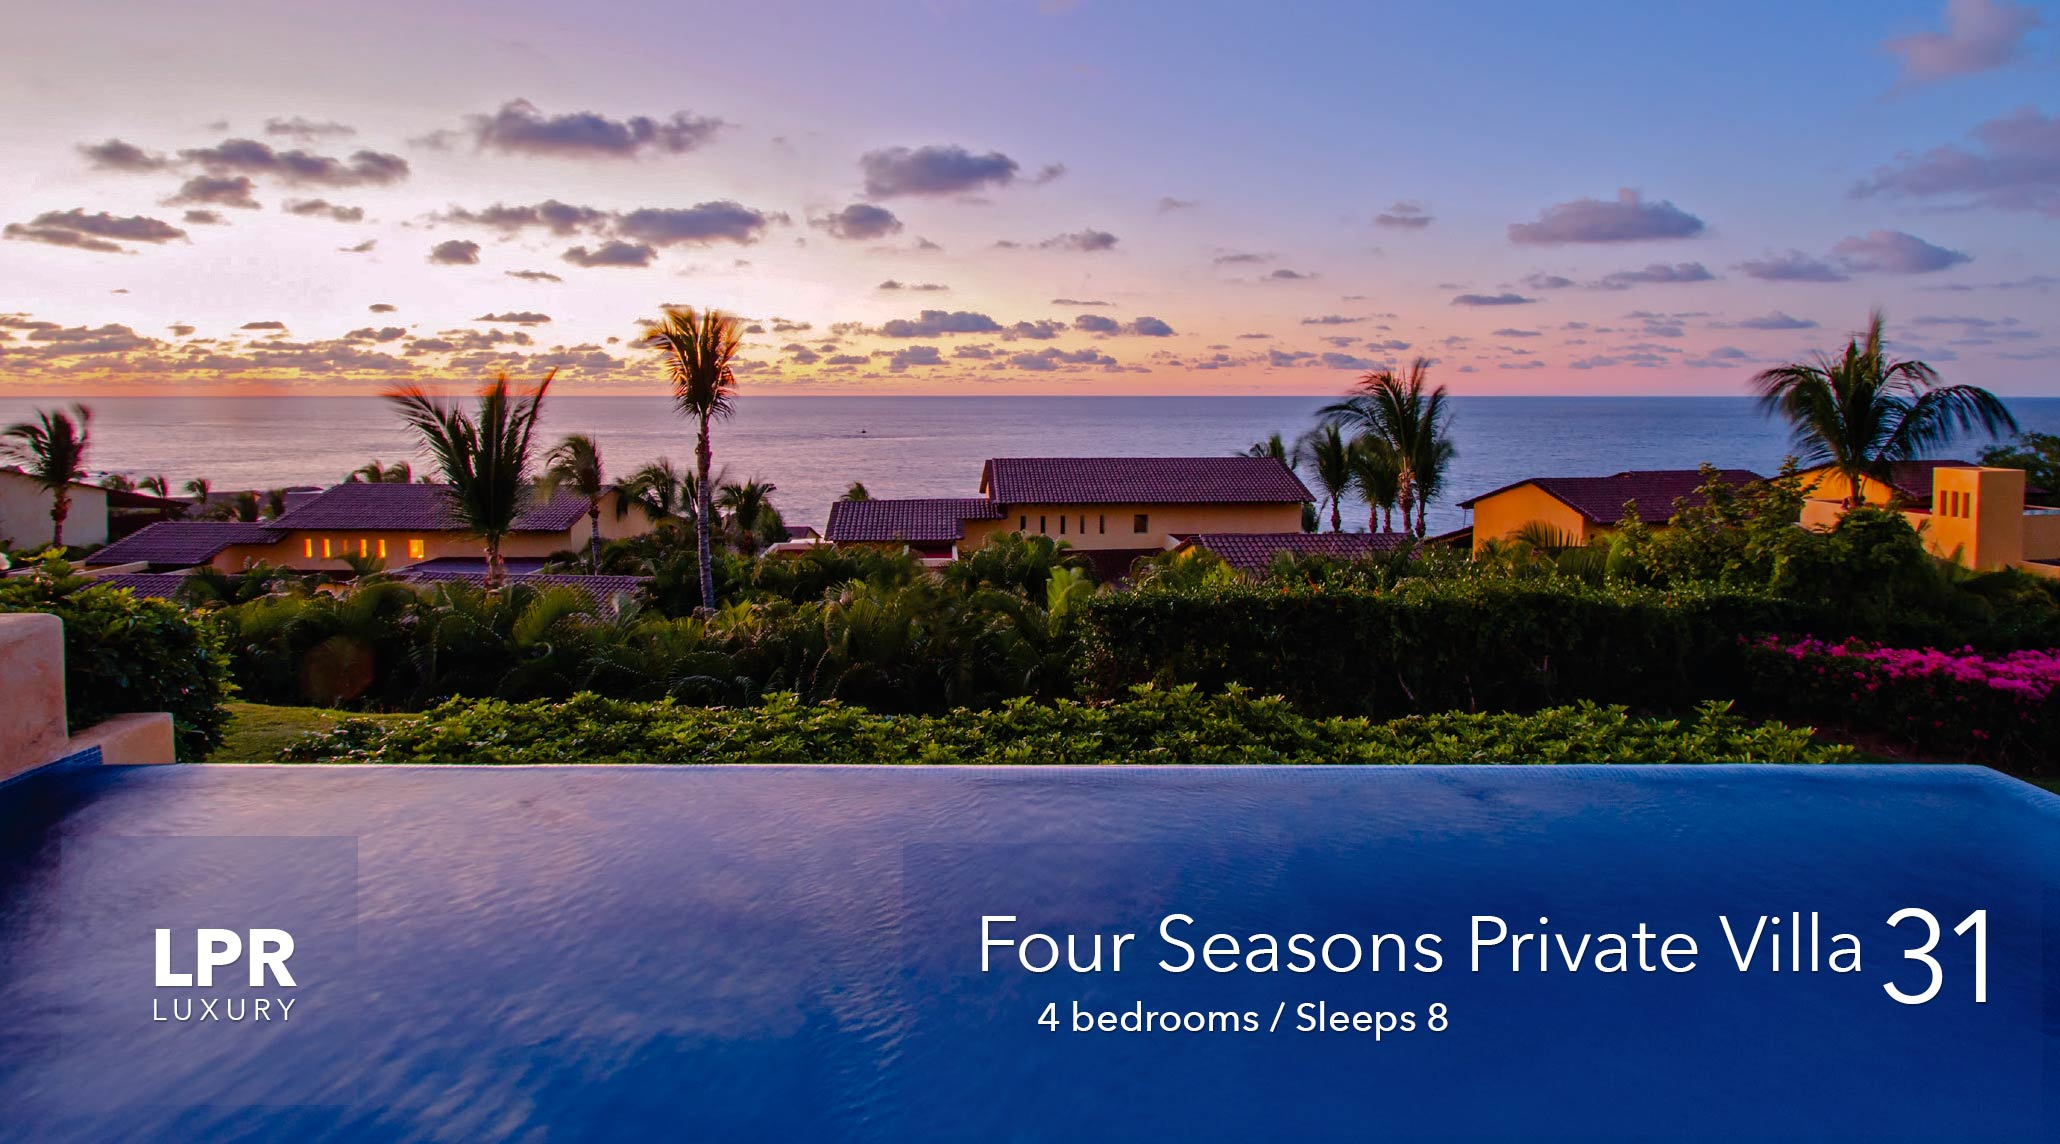 Four Seasons Private Villa 31 - Luxury Punta Mita real estate and vacation rentals - Mexico